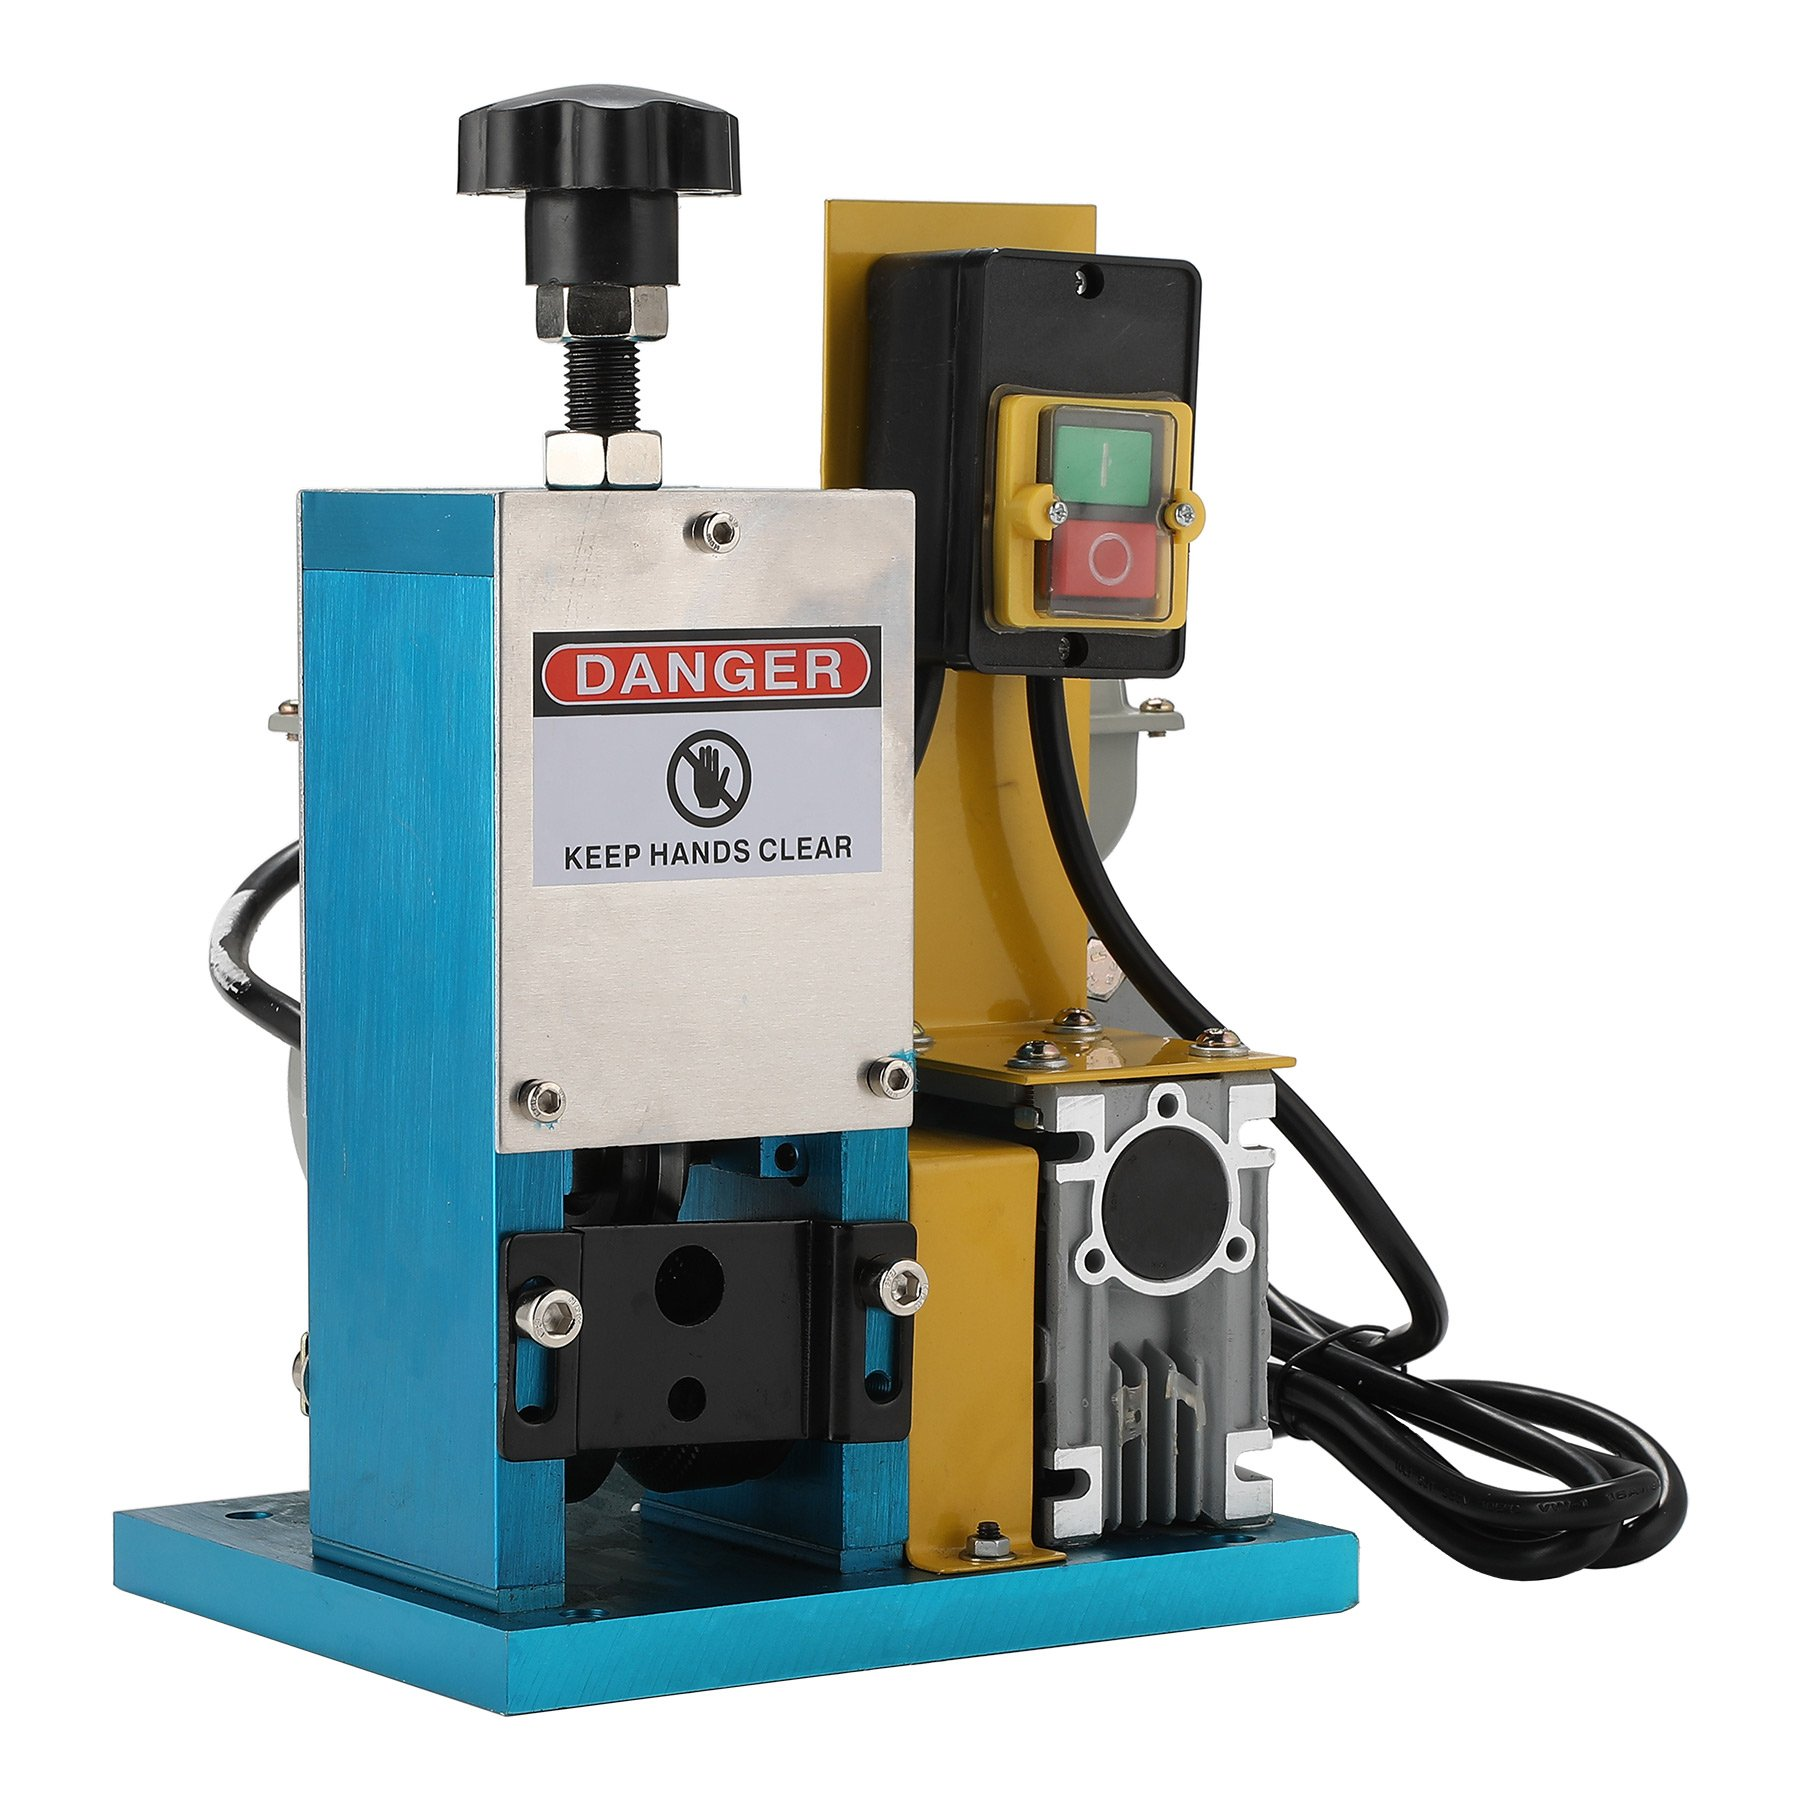 CO-Z Automatic Electric Wire Stripping Machine Portable Scrap Cable Stripper for Scrap Copper Recycling, including Extra Blade by CO-Z (Image #2)